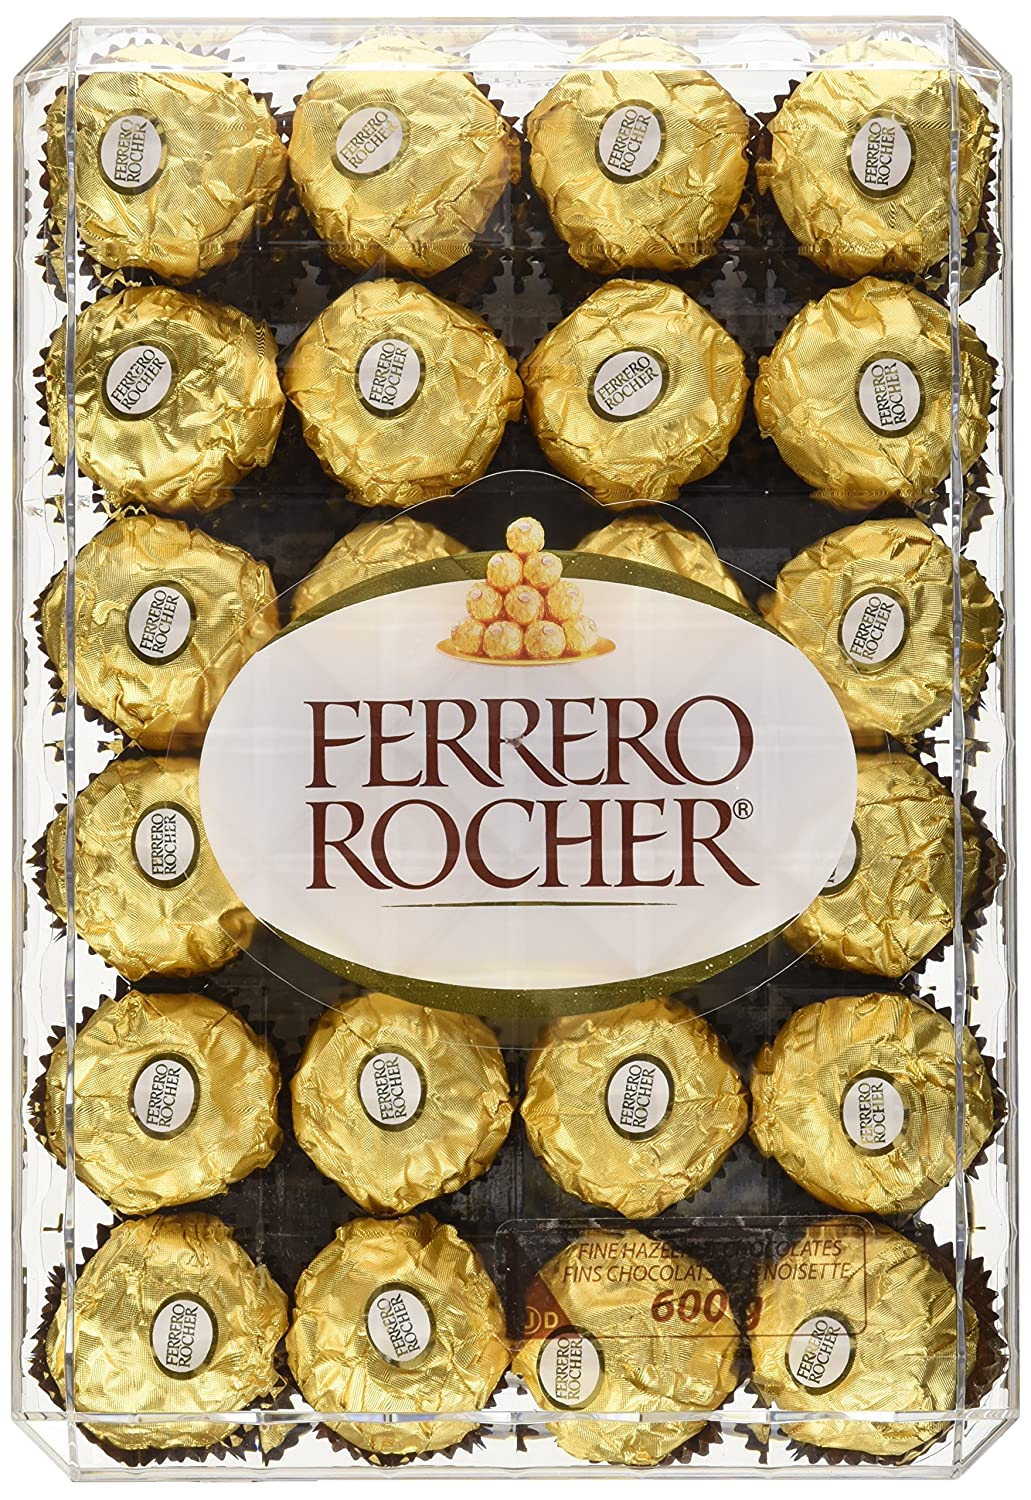 Today only: $12.59 (was $19.99) Ferrero Rocher T48 Diamond Box, 600 Grams